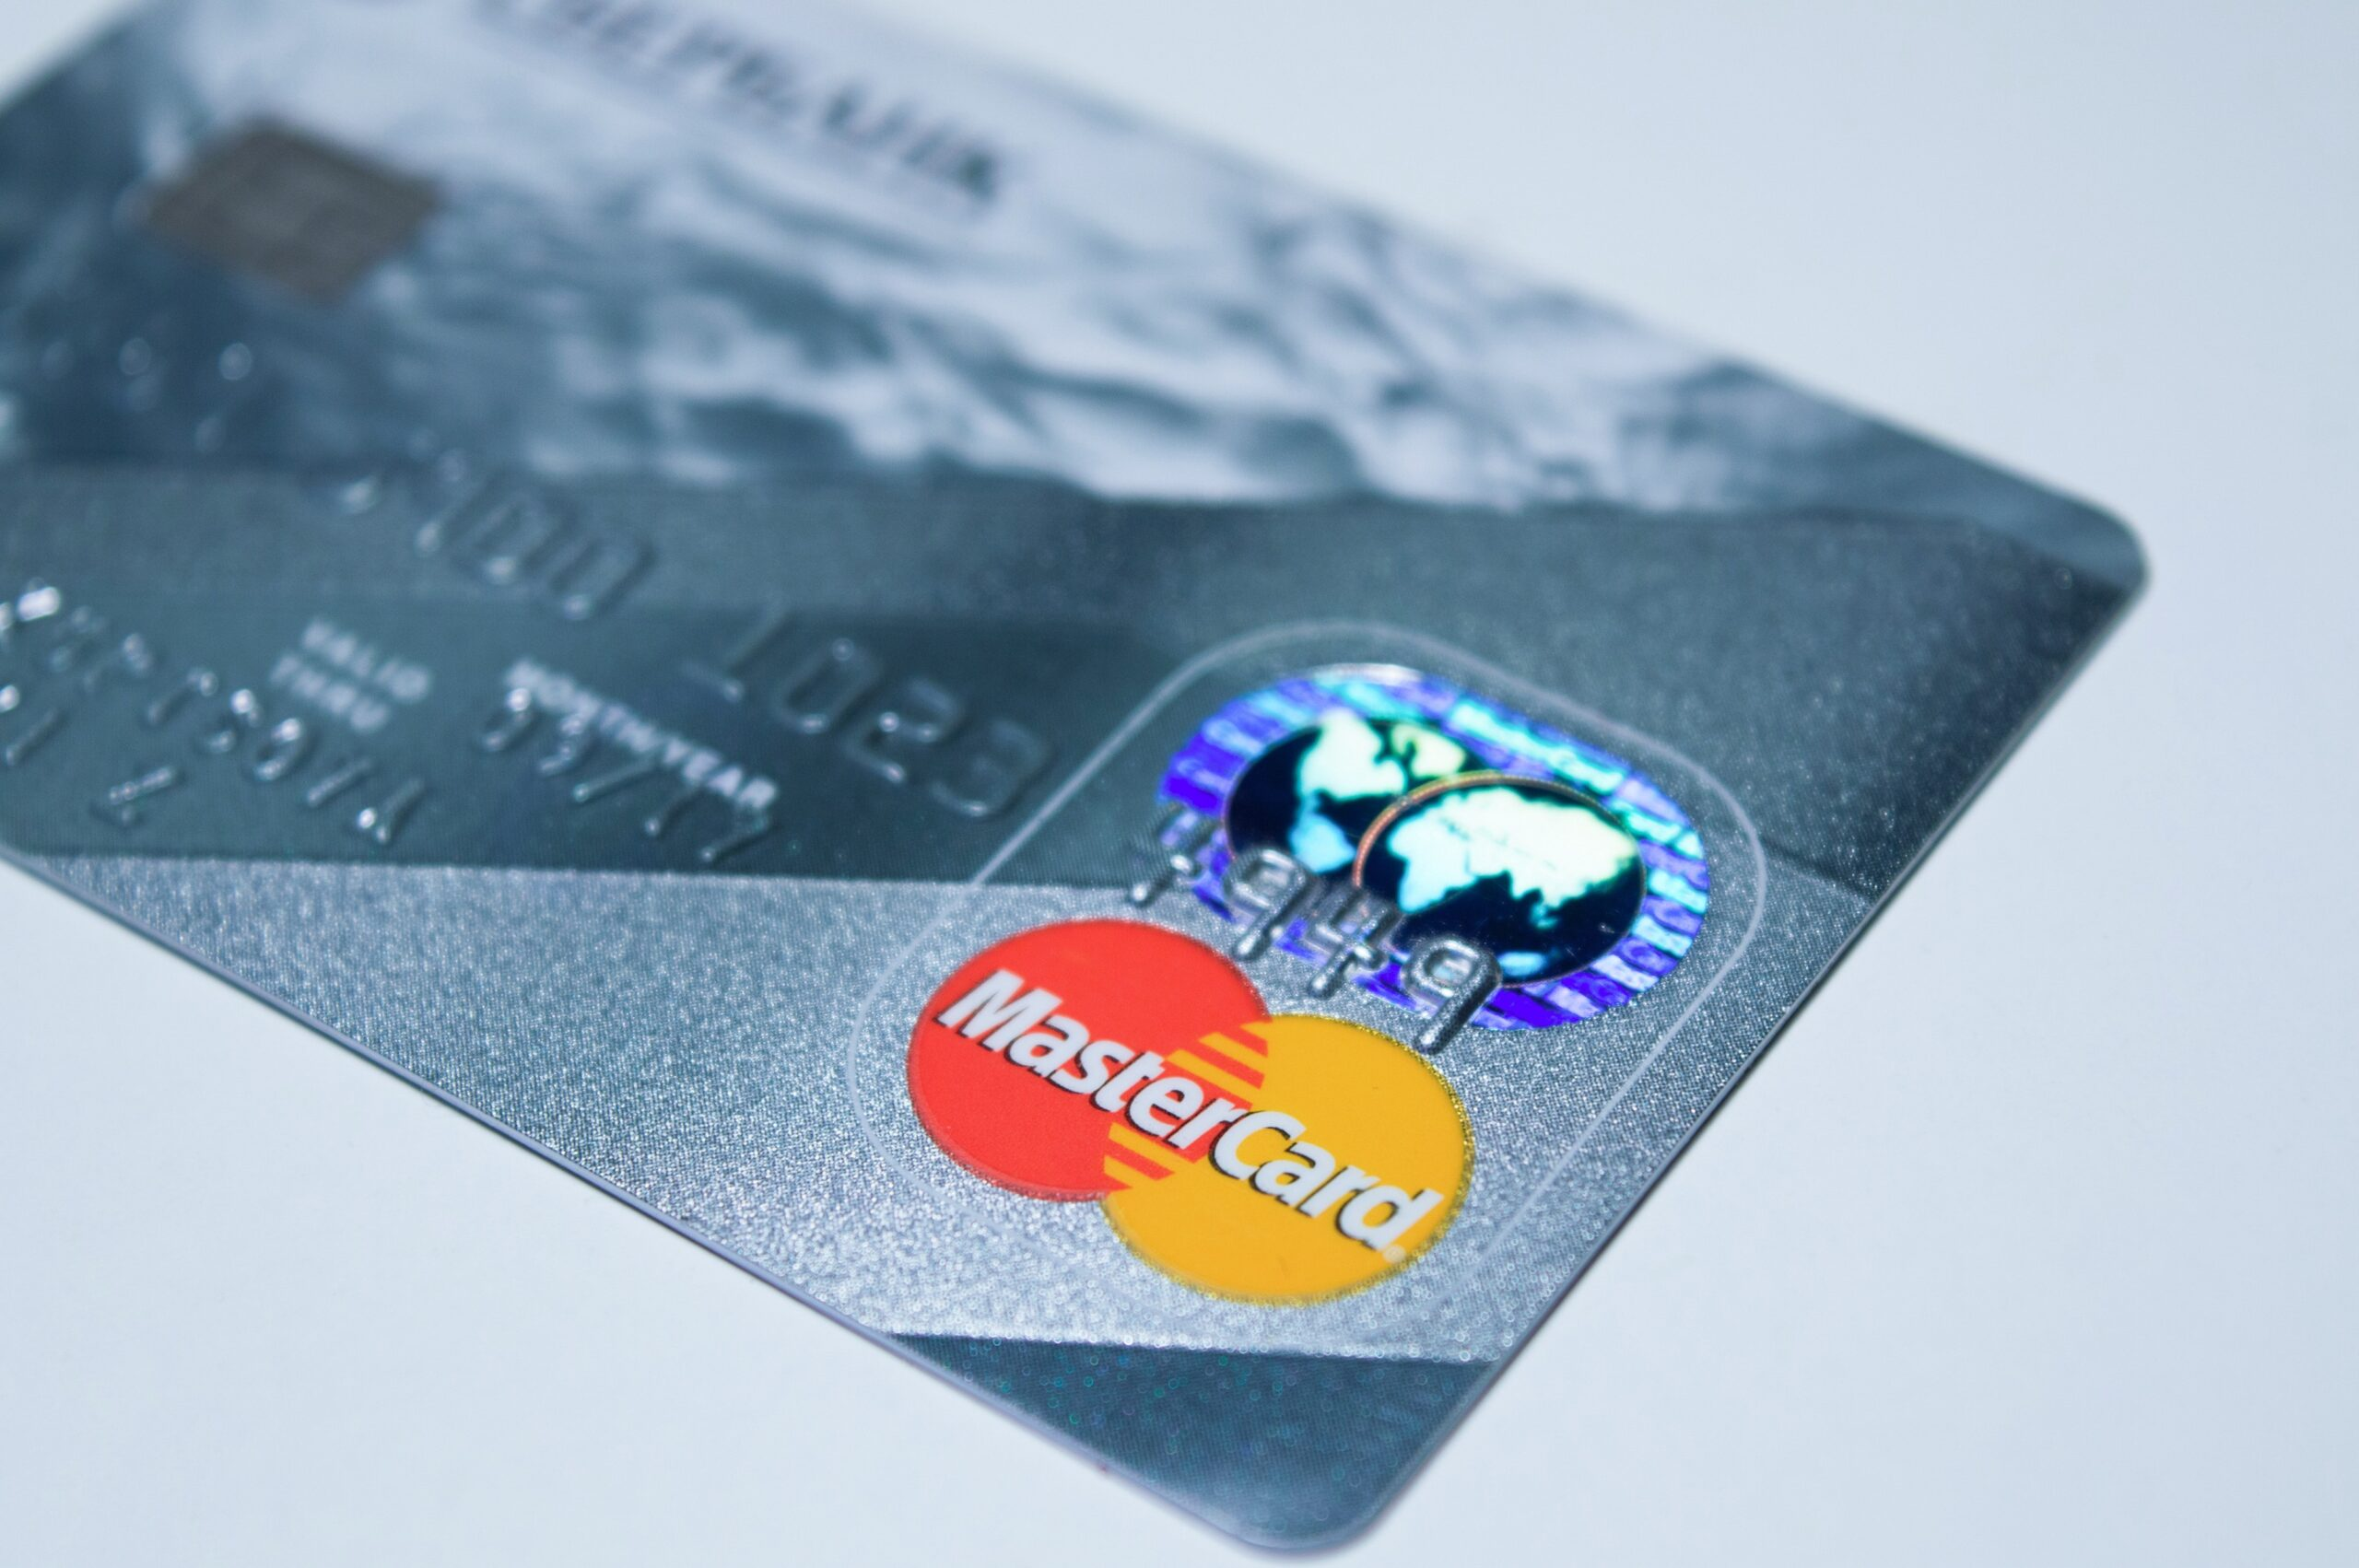 Subaio selected to join Mastercard's Start Path program